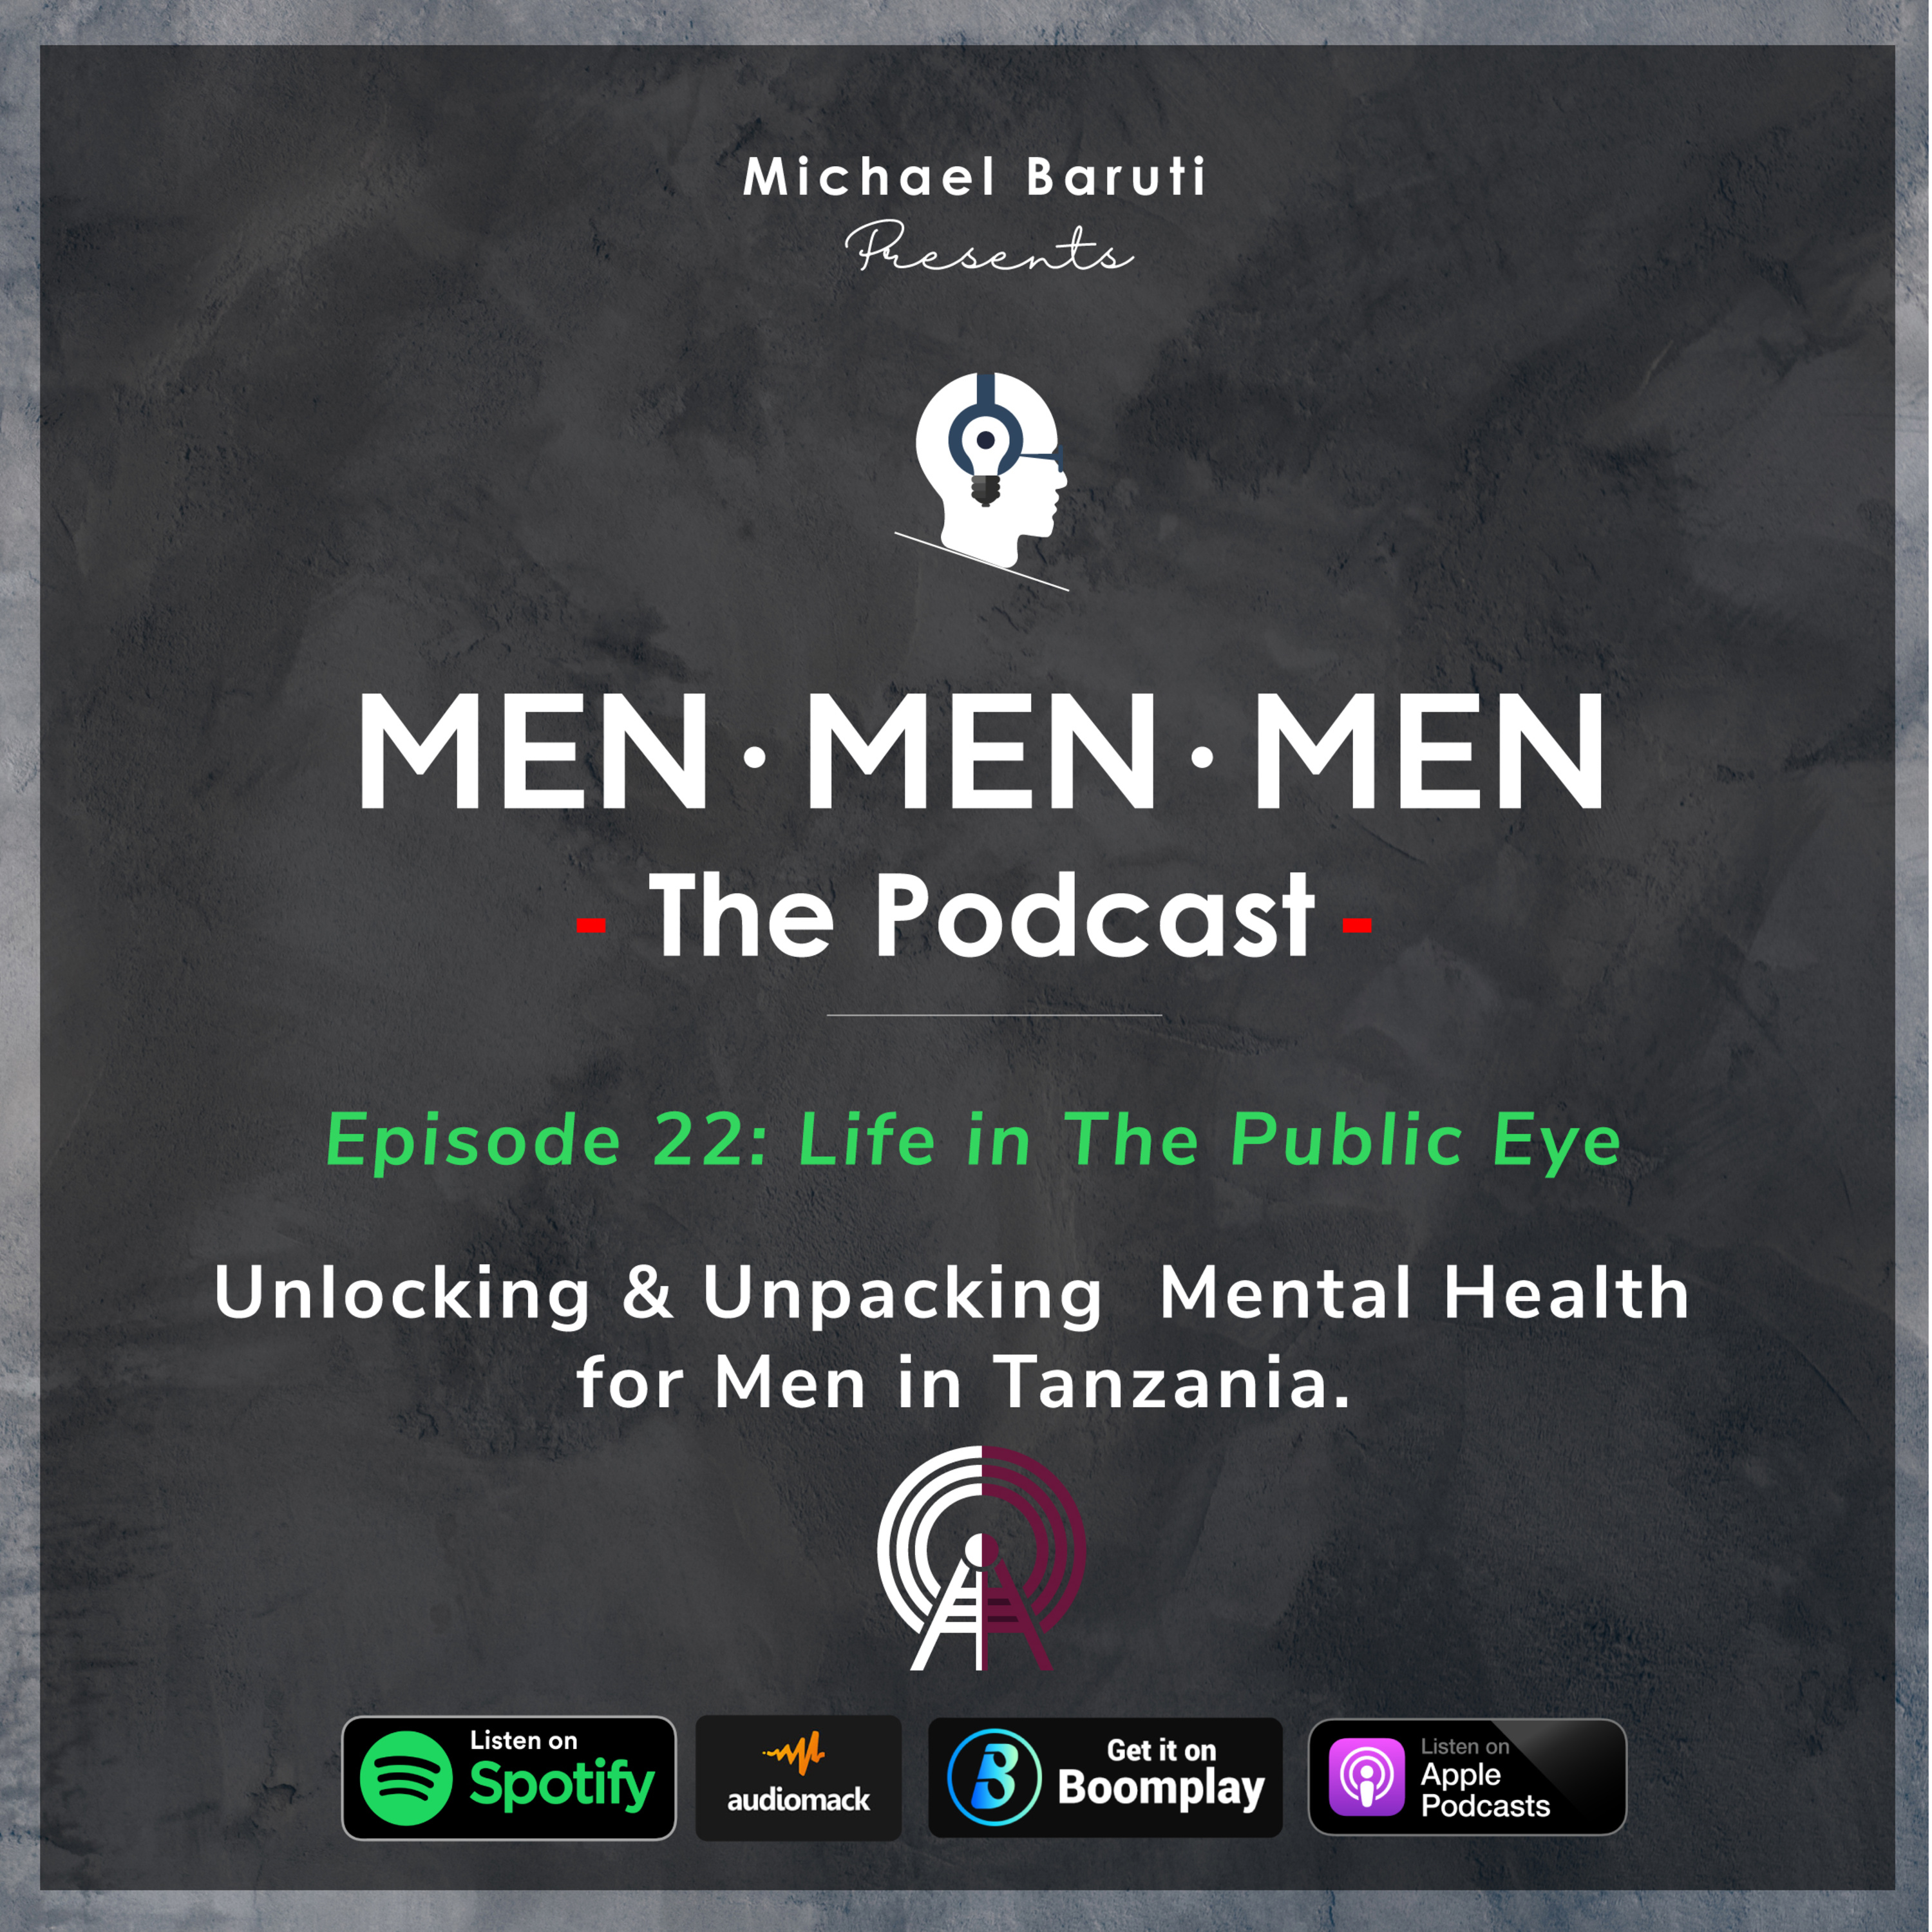 Men The Podcast - Ep - 22 - Life in the Public Eye